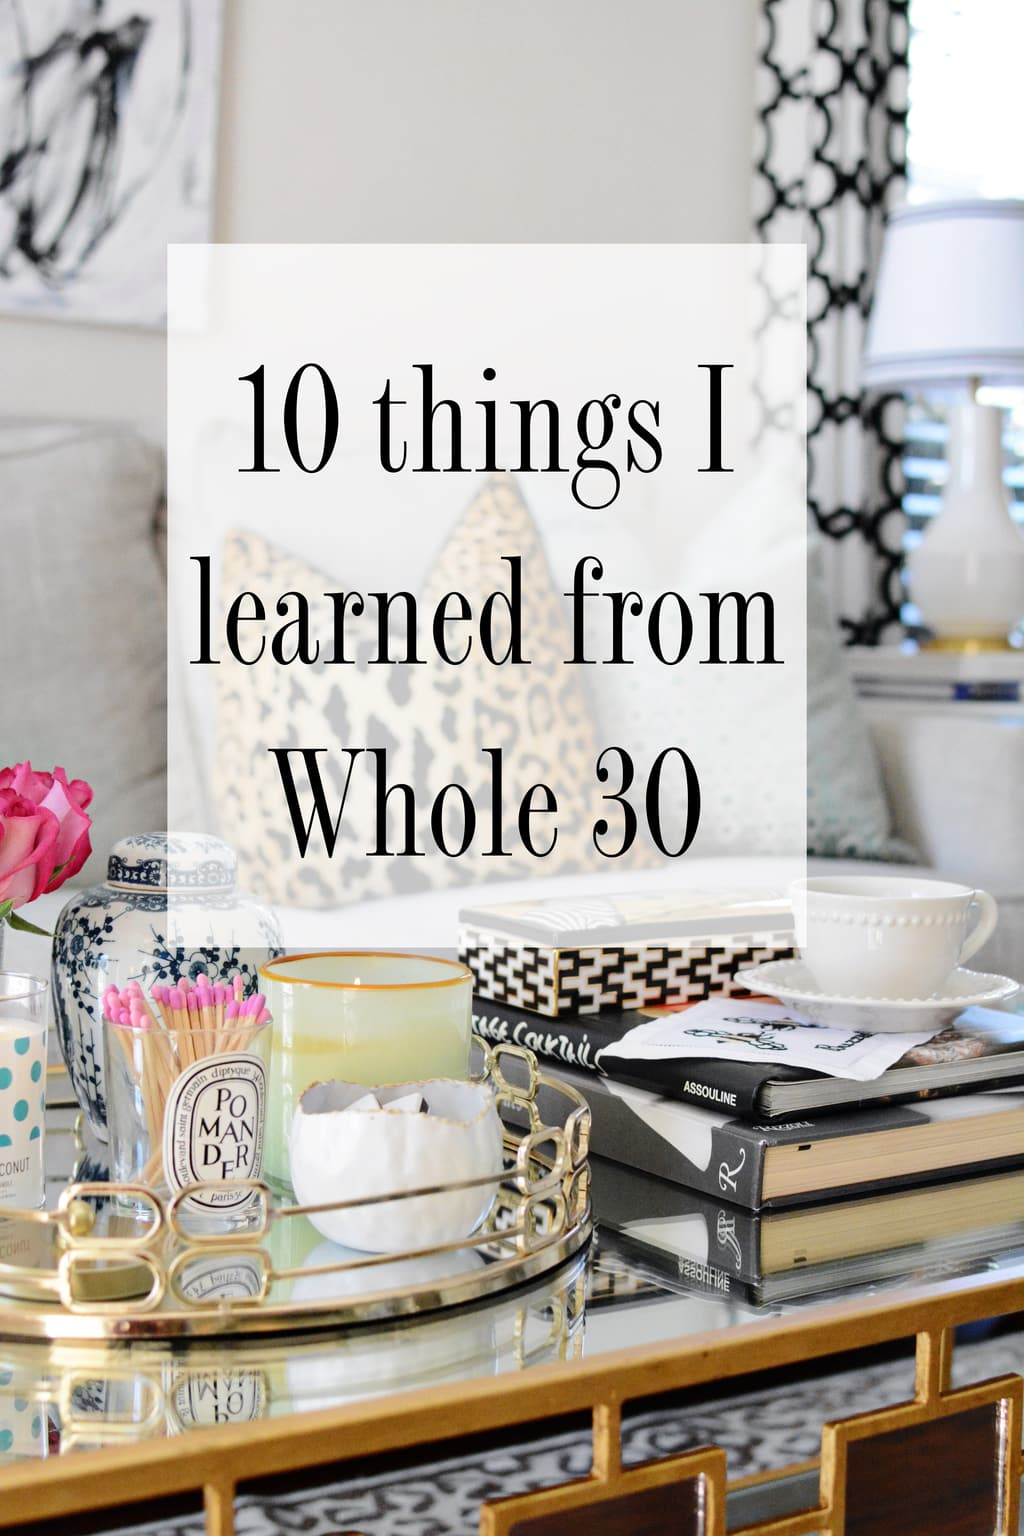 10 Things I Learned From Whole 30